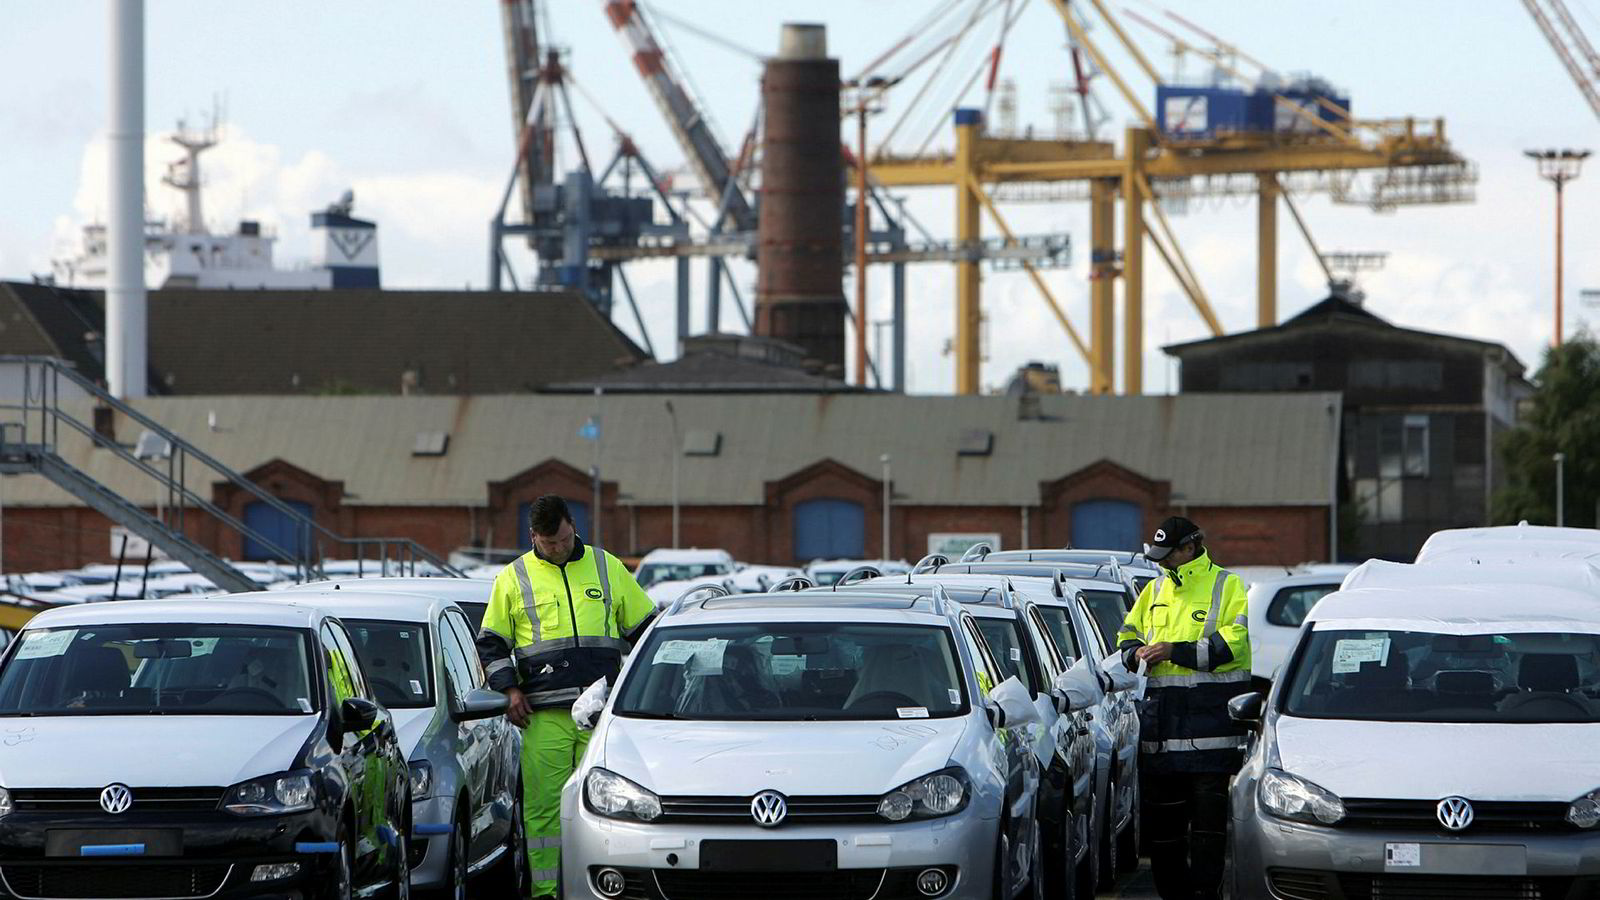 (FILES) This file photo taken on August 31, 2010 shows employees of German logistics company BLG Logistics Group AG controlling rows of German Volkswagen cars at the car terminal at the harbour of Bremerhaven, northern Germany. On February 09, 2017 Germany announced a record trade surplus, with exports of